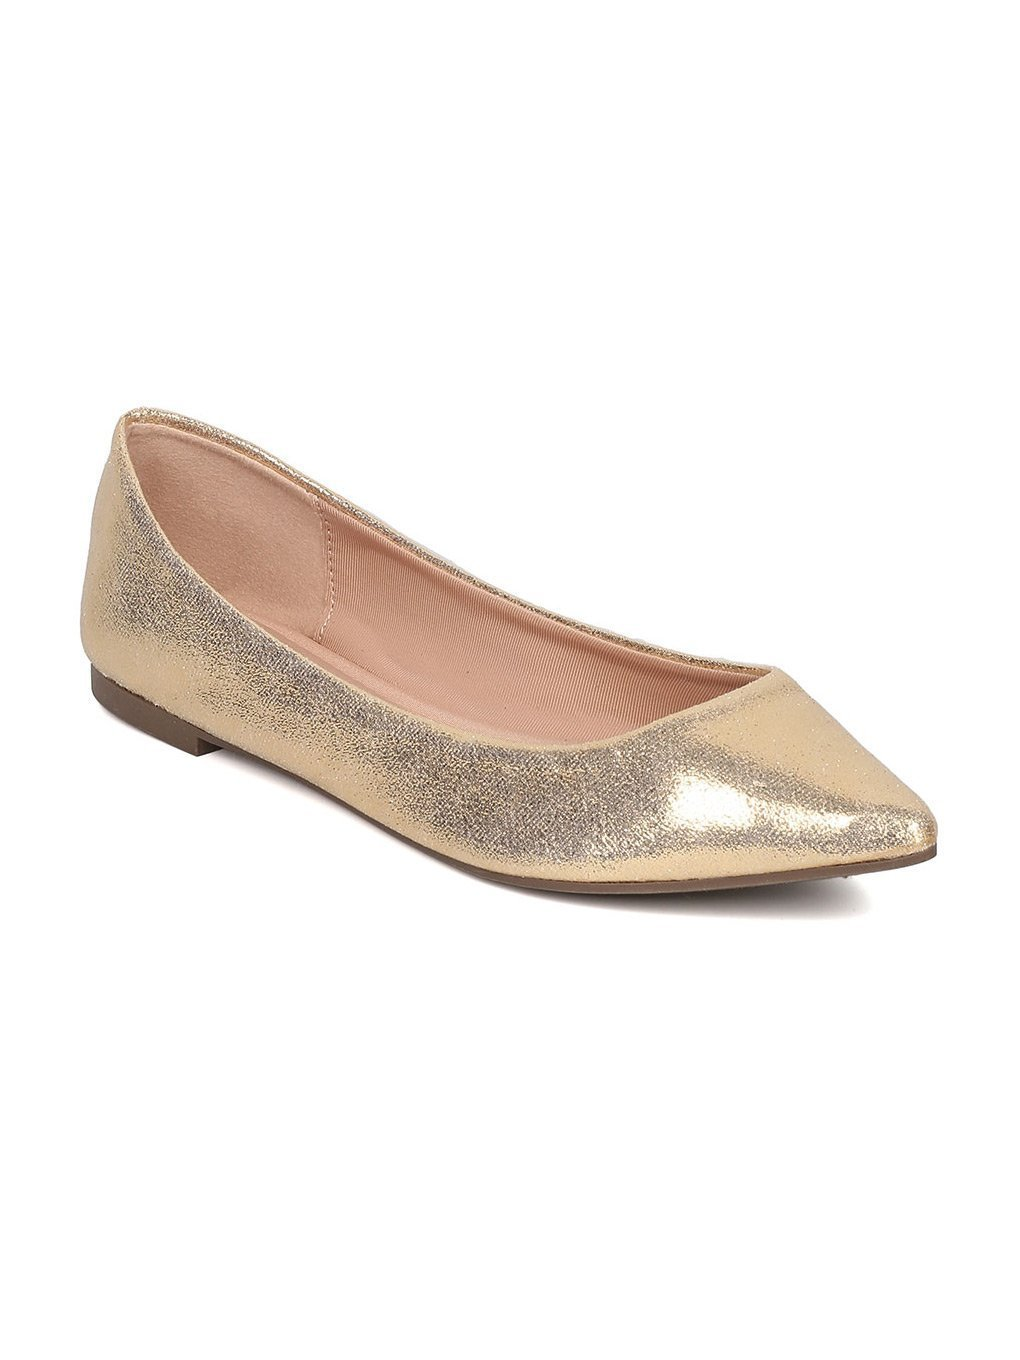 Breckelle's Women Faux Suede Pointy Toe Ballet Flat GH13 B06XYJDW2X 8.5 M US|Champagne